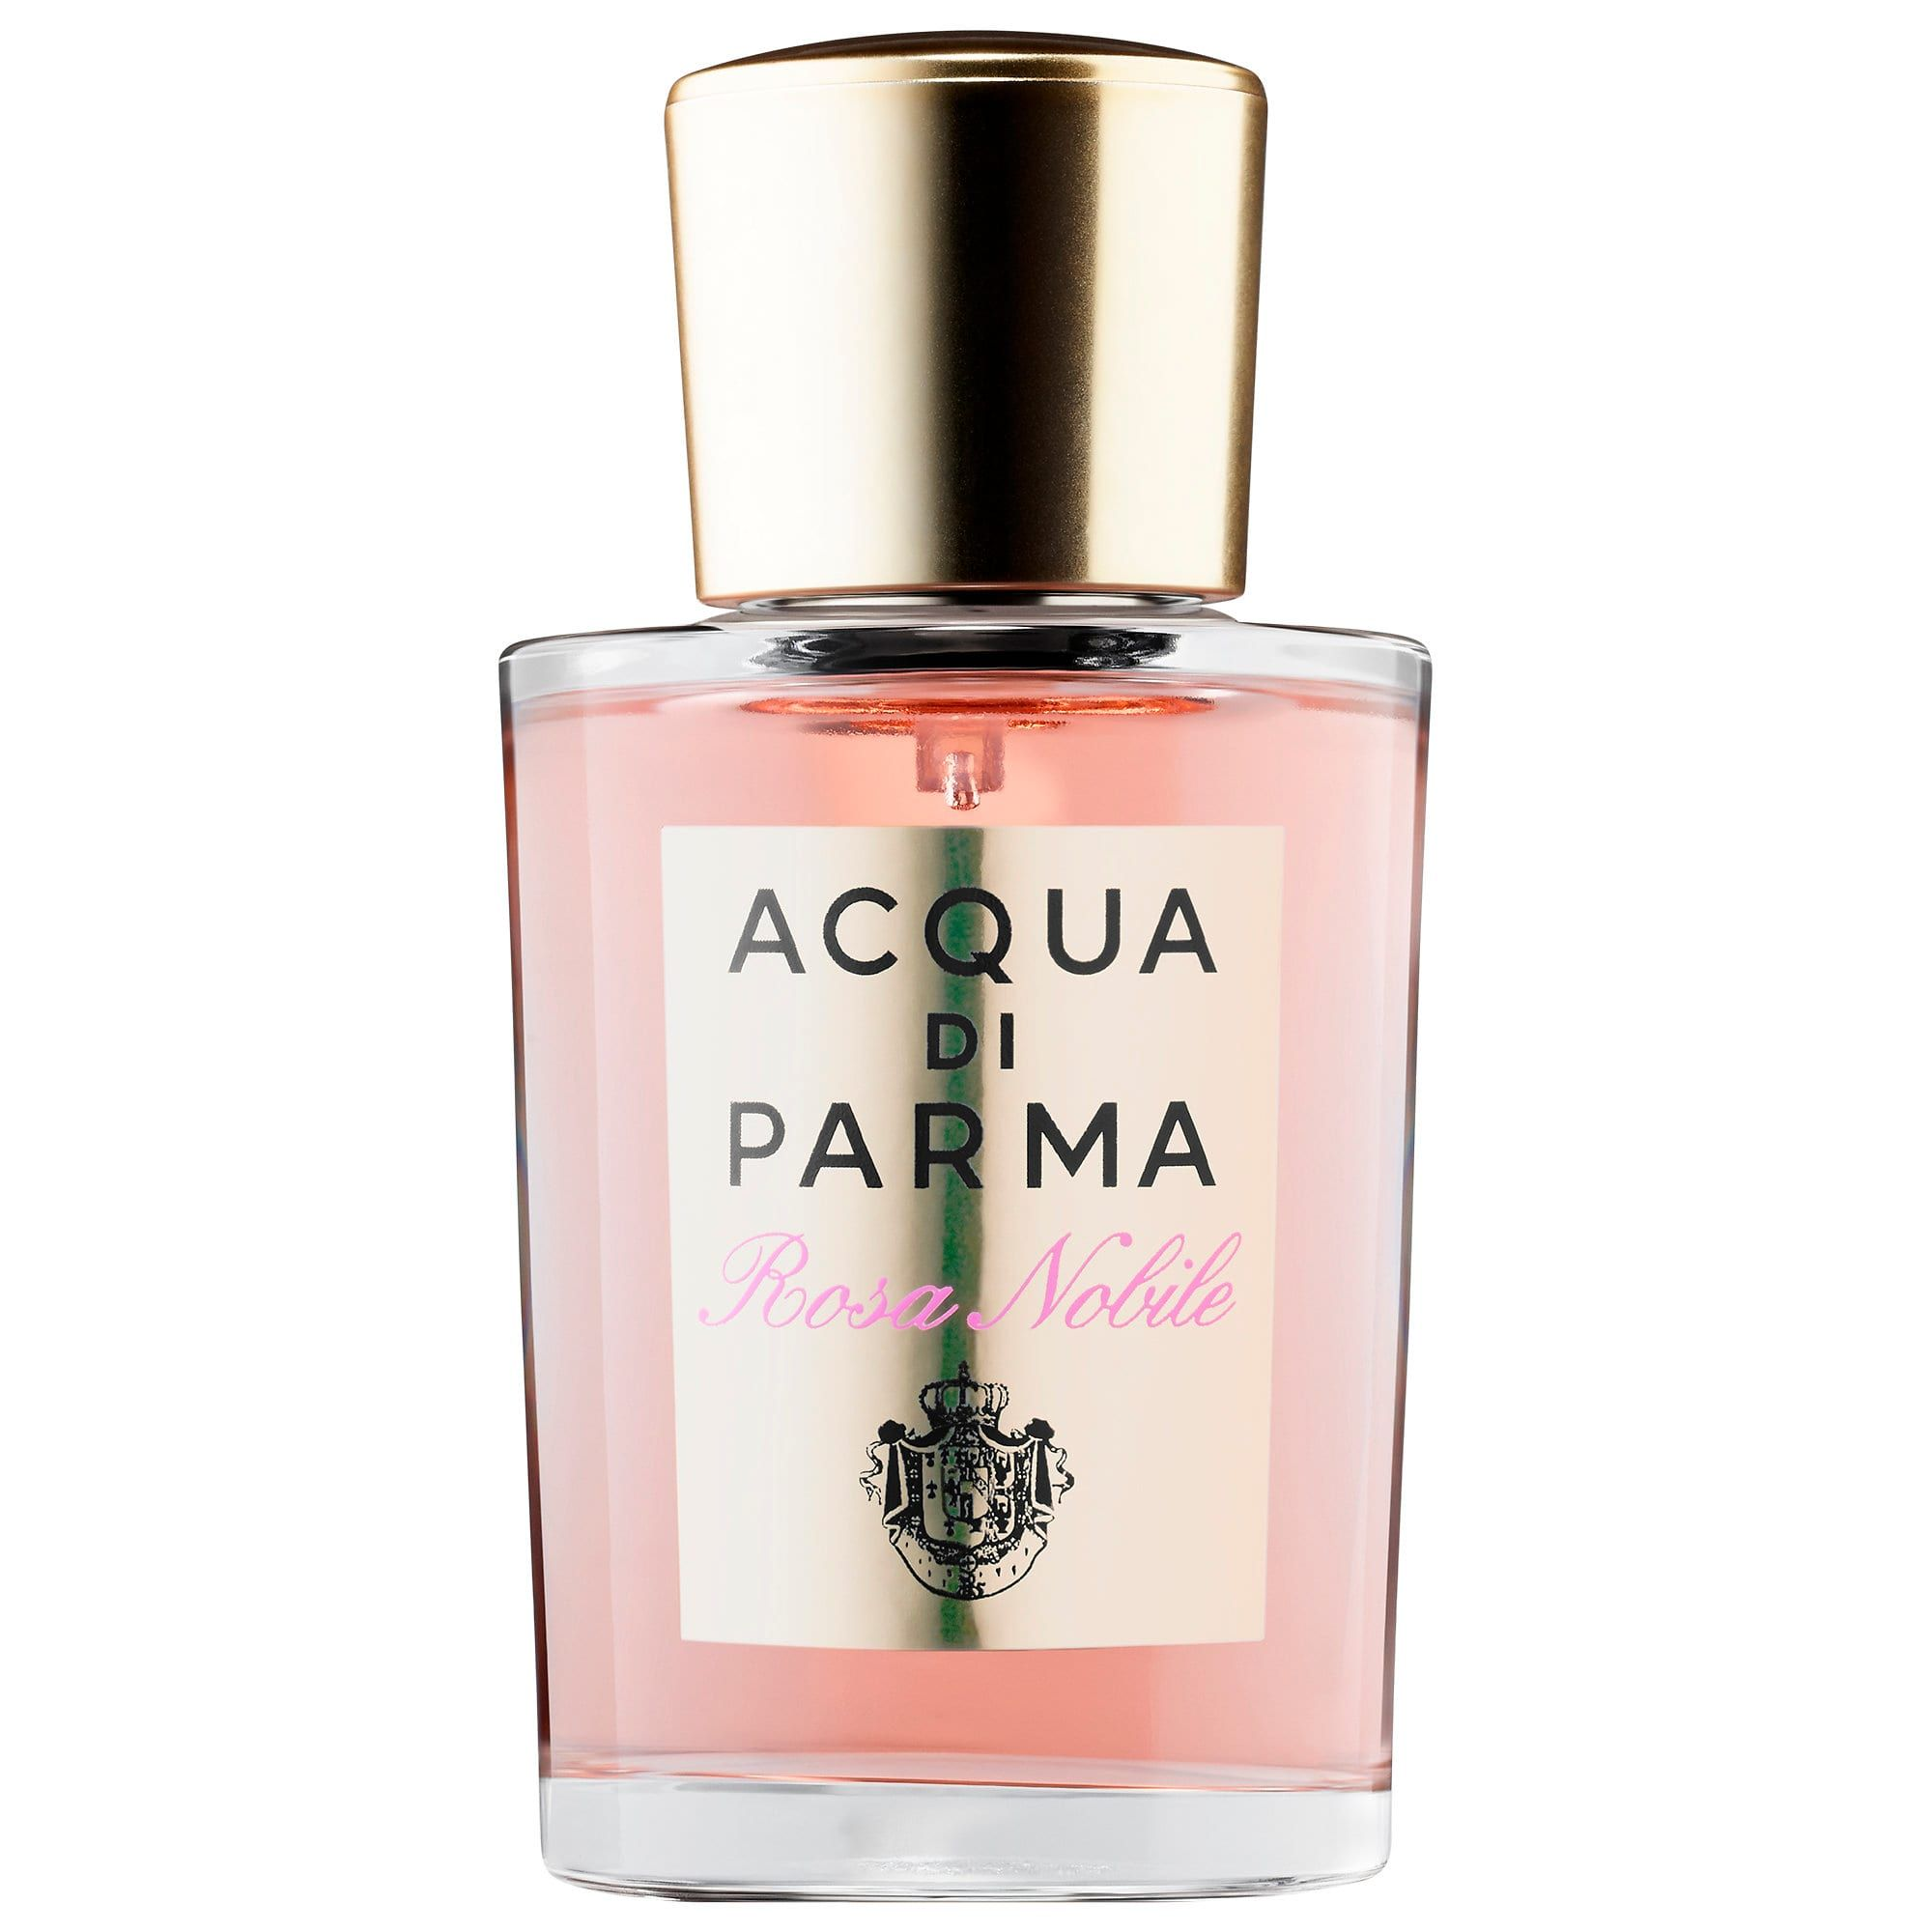 "Acqua Di Parma Rosa Nobile sephora.com $68.00 SHOP NOW What they say: "" The exquisite fragrance opens with soft, vibrant notes of Sicilian mandarin and Calabrian bergamot. The heart reveals velvety accents of peony, violet, and lily of the valley, which perfectly complement the richness of the centifolia rose from Italy."" What we say: When you want to cosplay as Belle—before she meets the Beast."